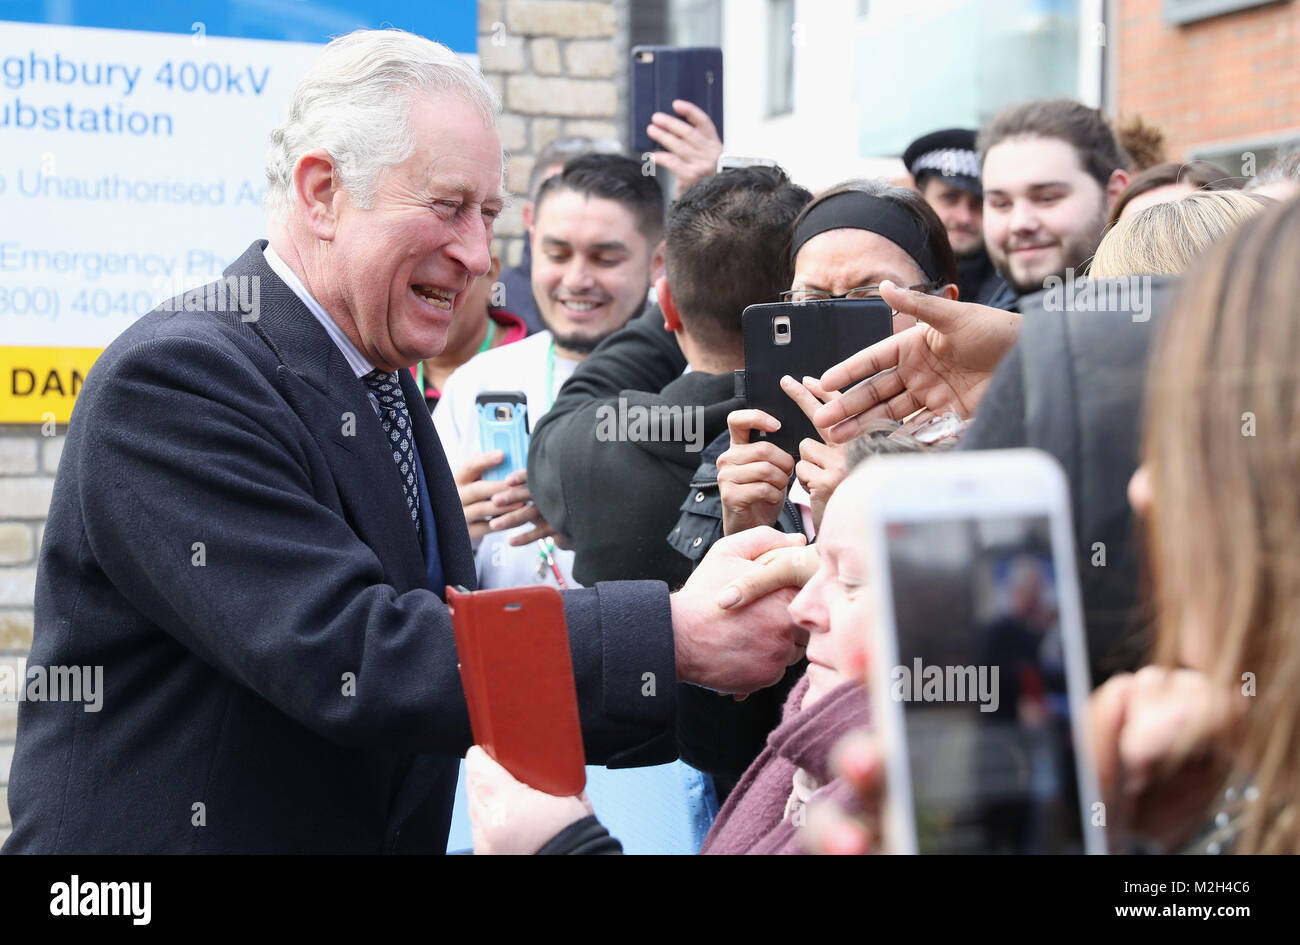 The Prince of Wales meets members of the public during the official opening of The National Grid's London Power - Stock Image